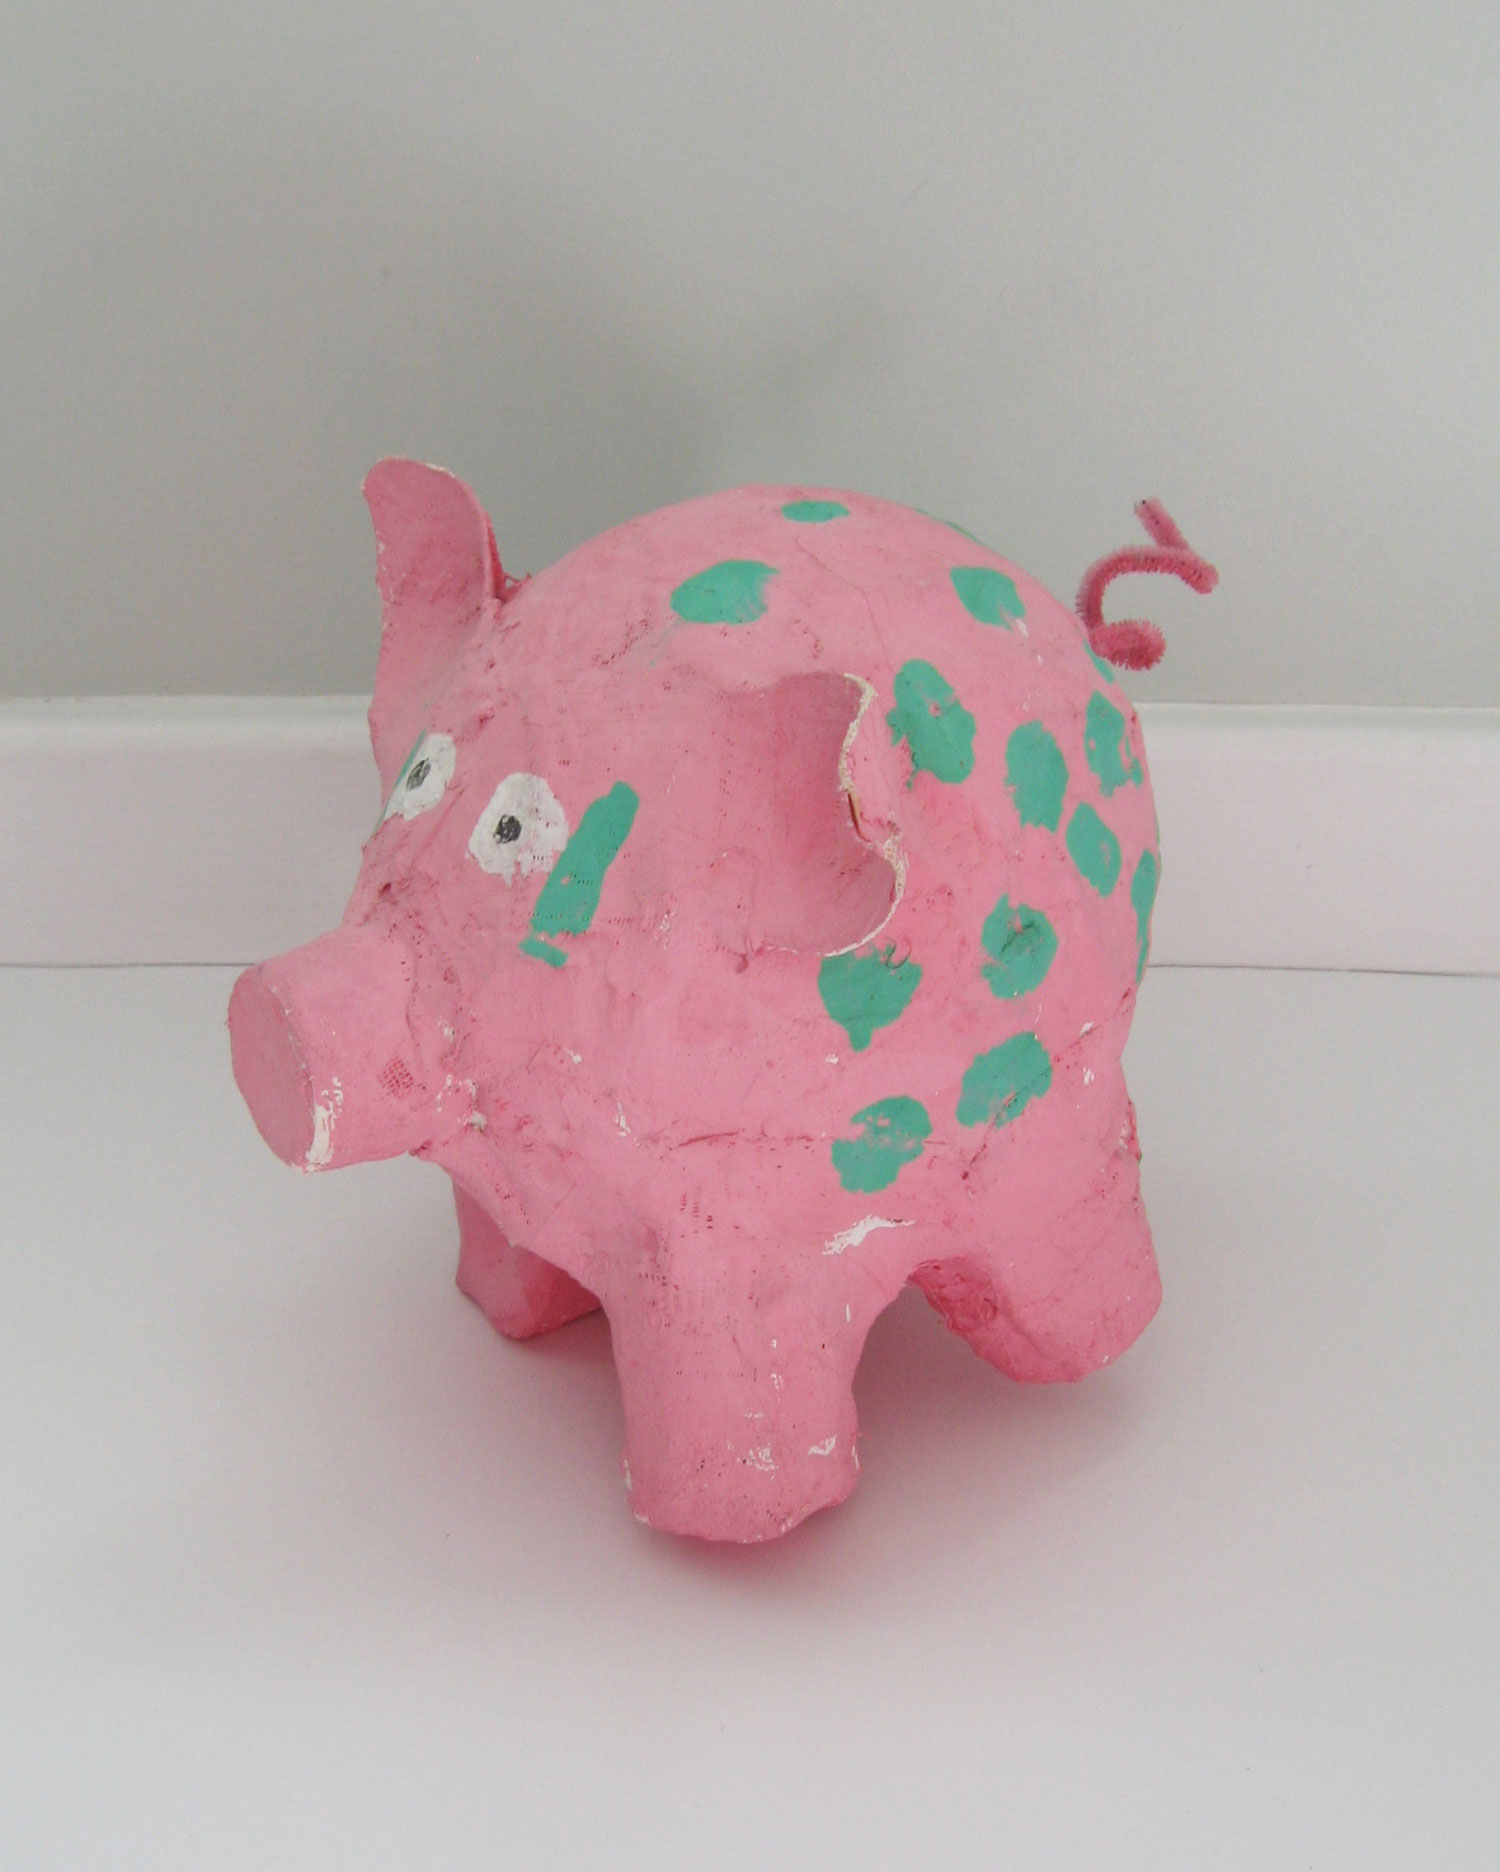 Pink paper mache pig made for her father in 1st grade. This has always been Dad's most prized piece of art.